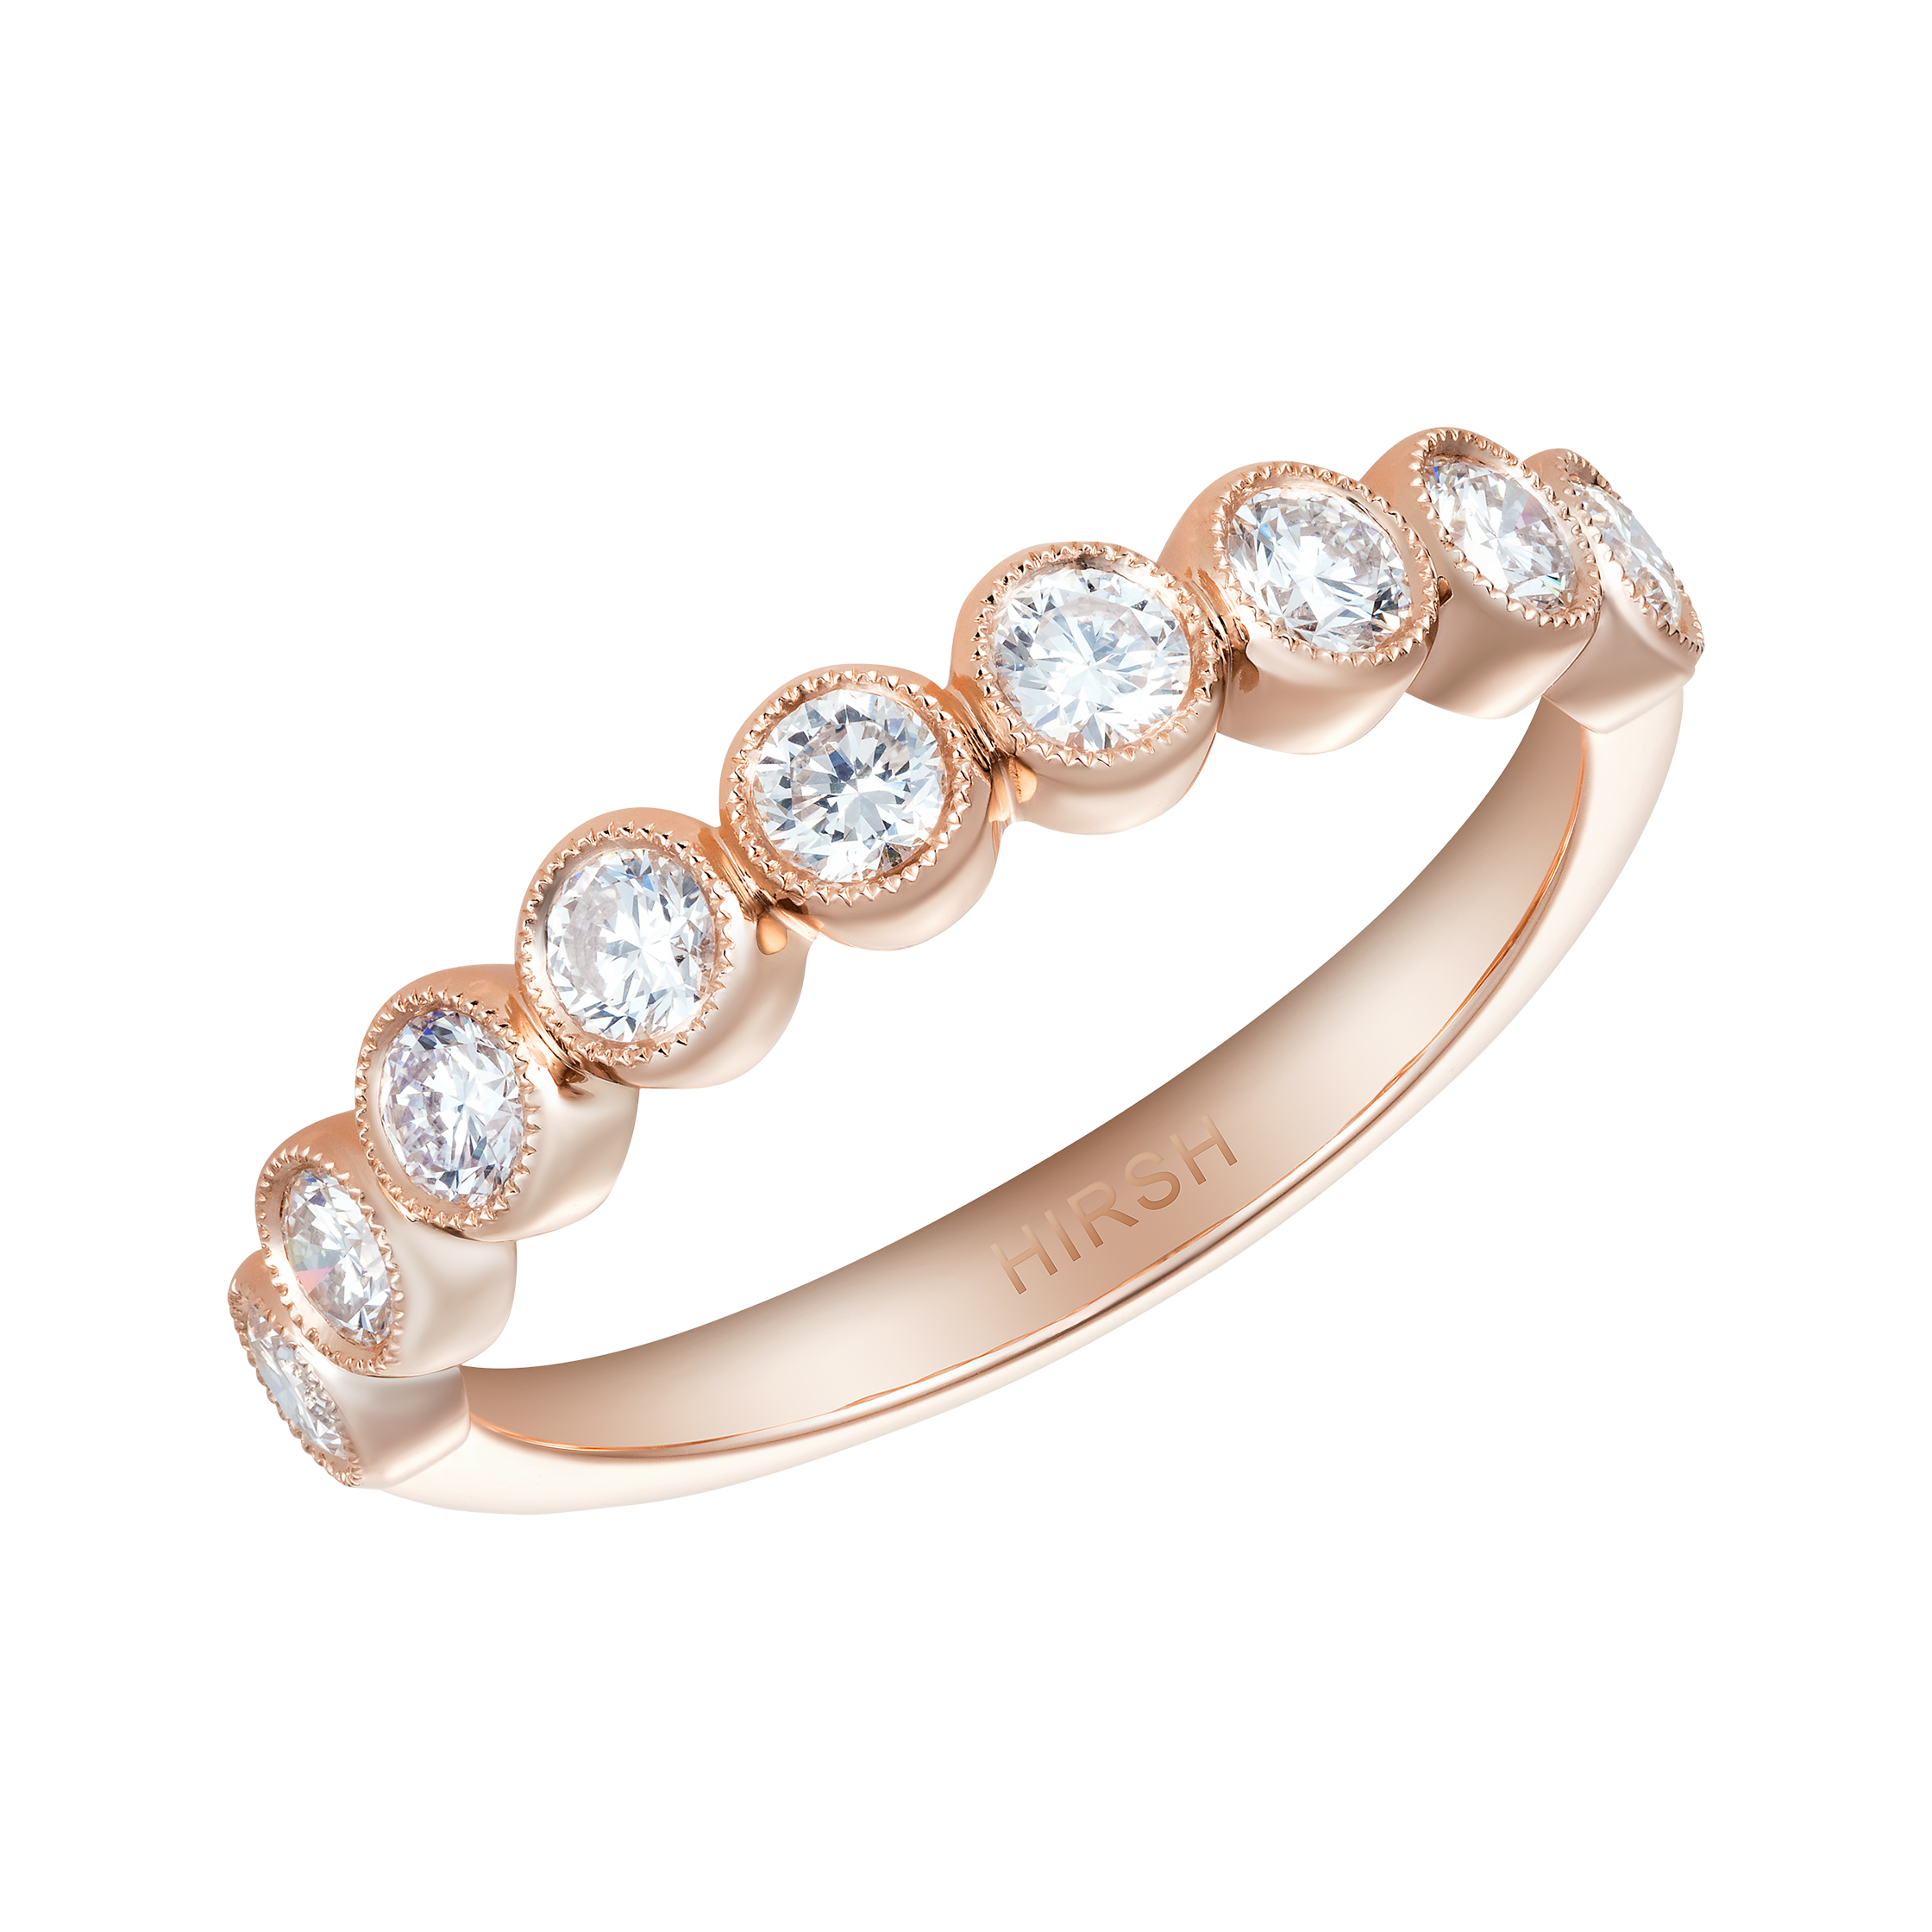 wedding by diamond plain products band gold desires bands ring rose milgrain mikolay